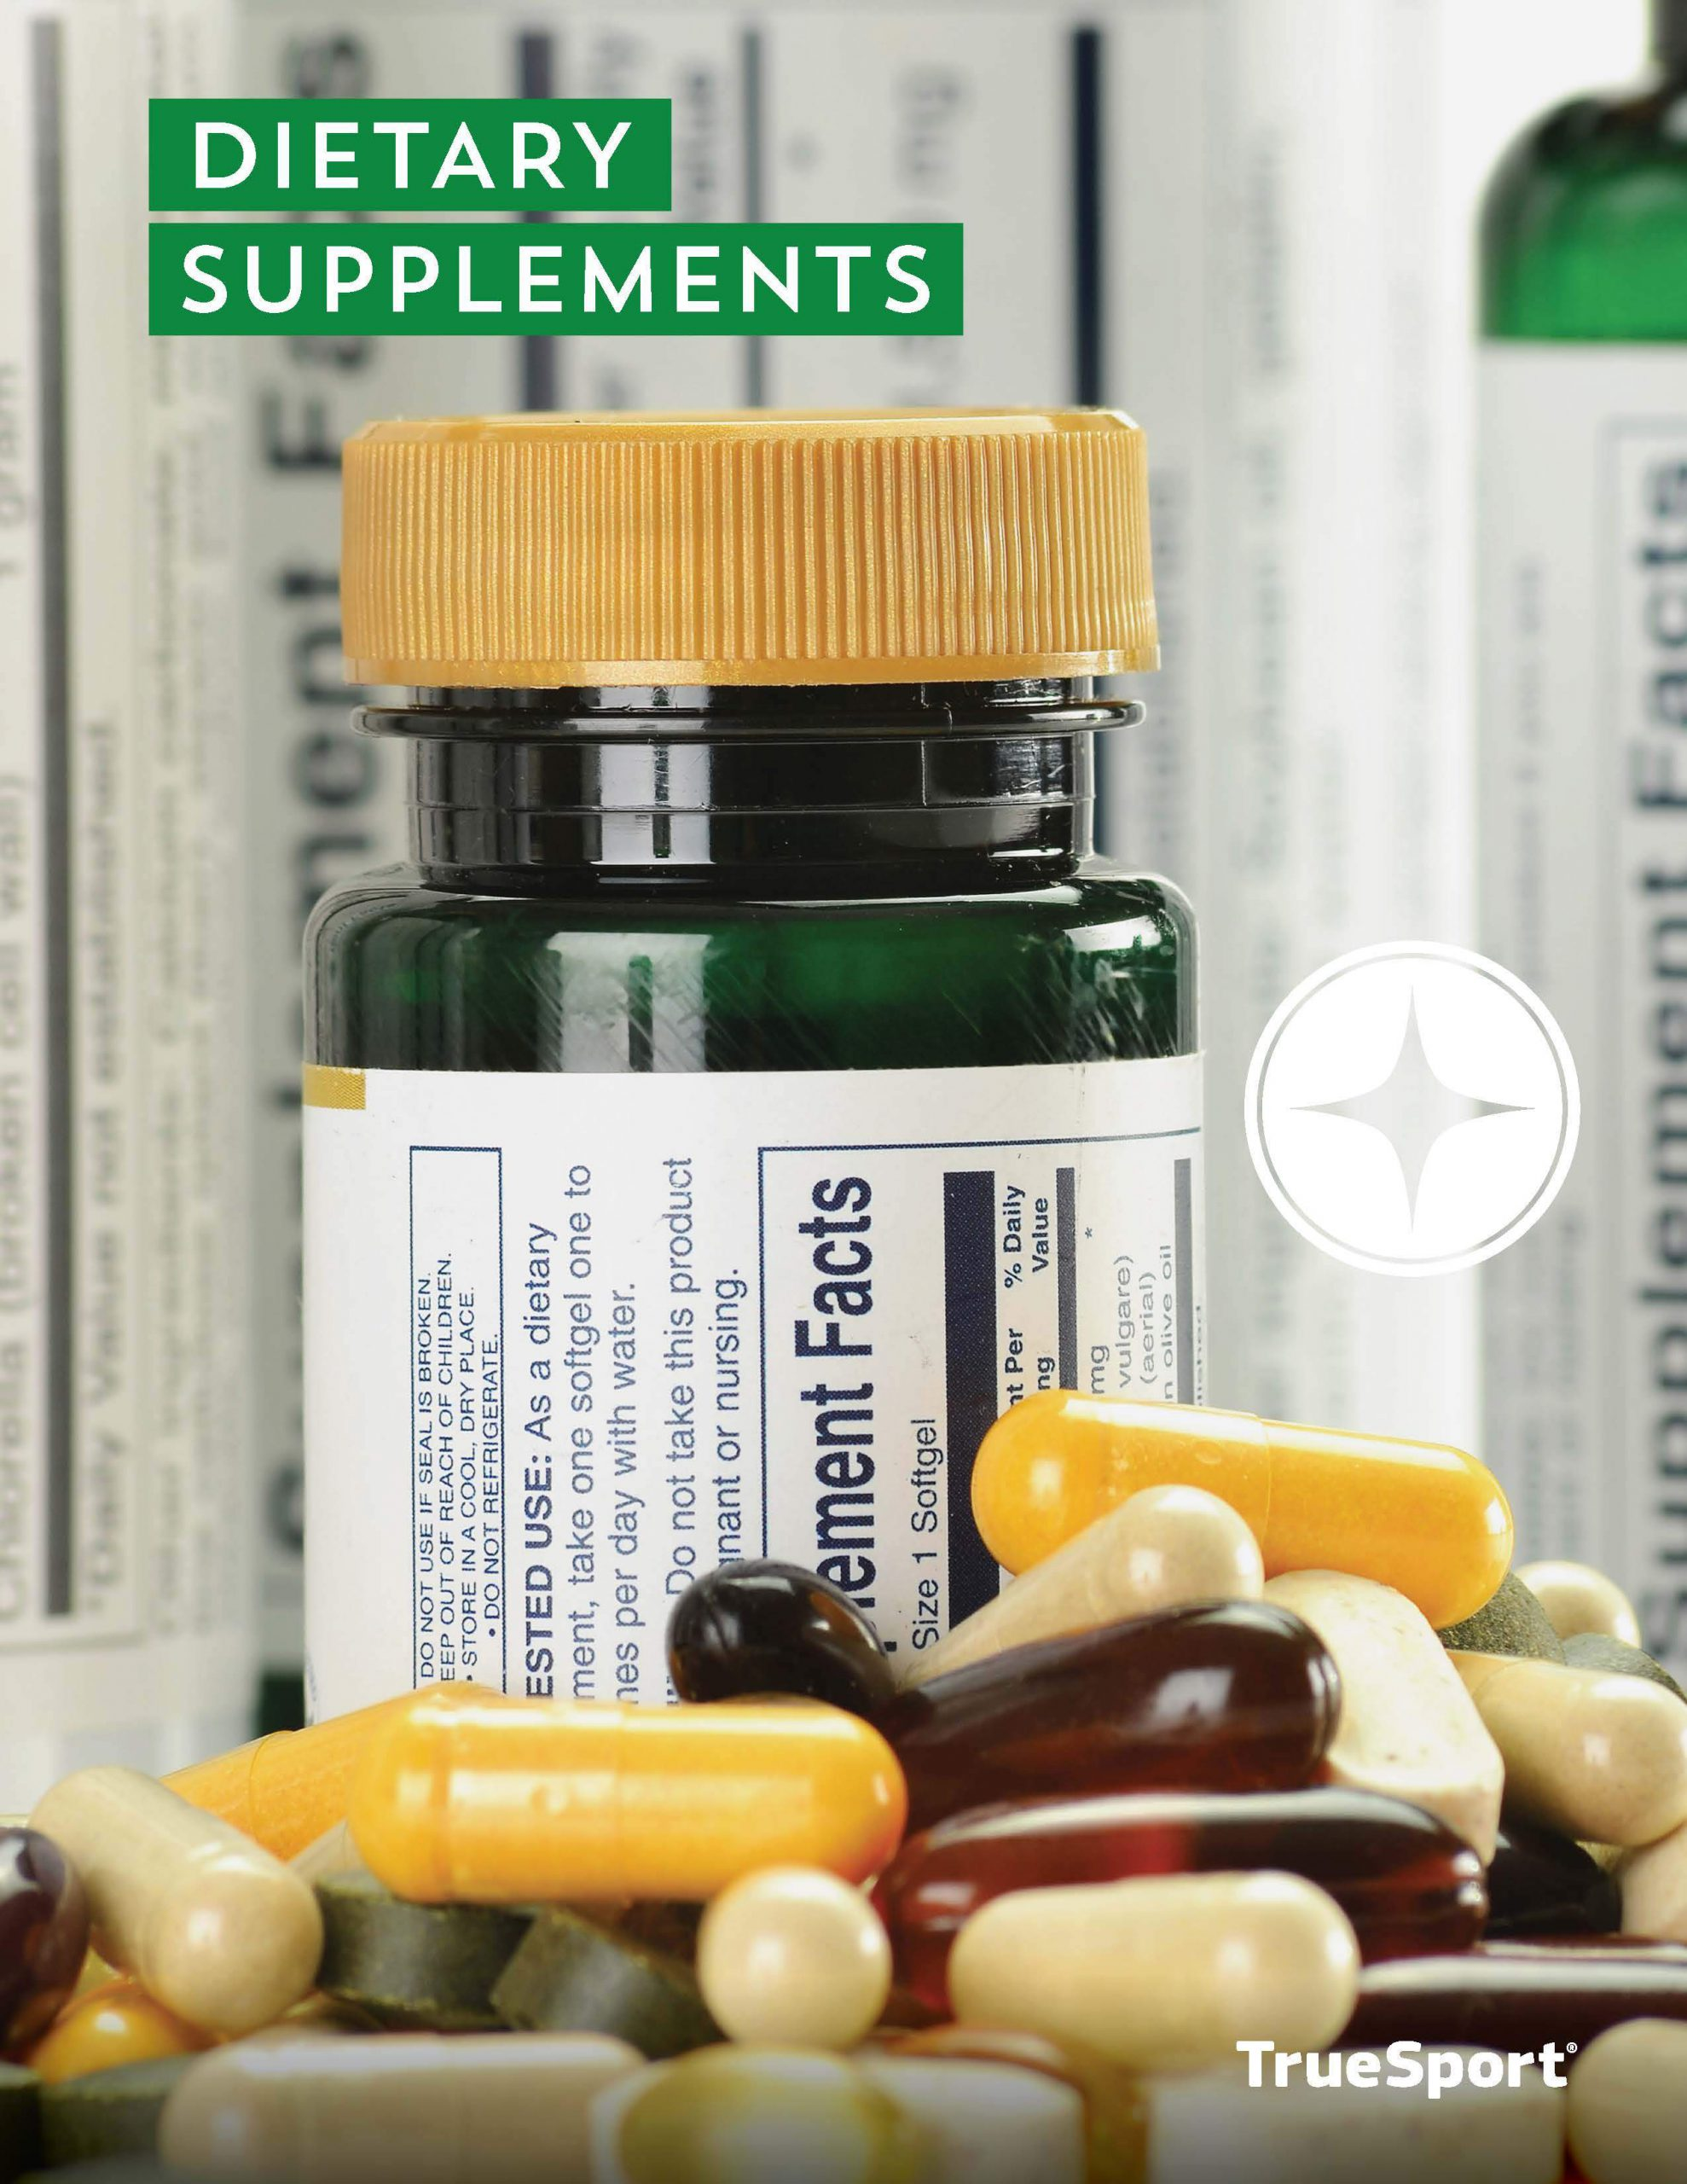 TrueSport Dietary supplements lesson cover image.